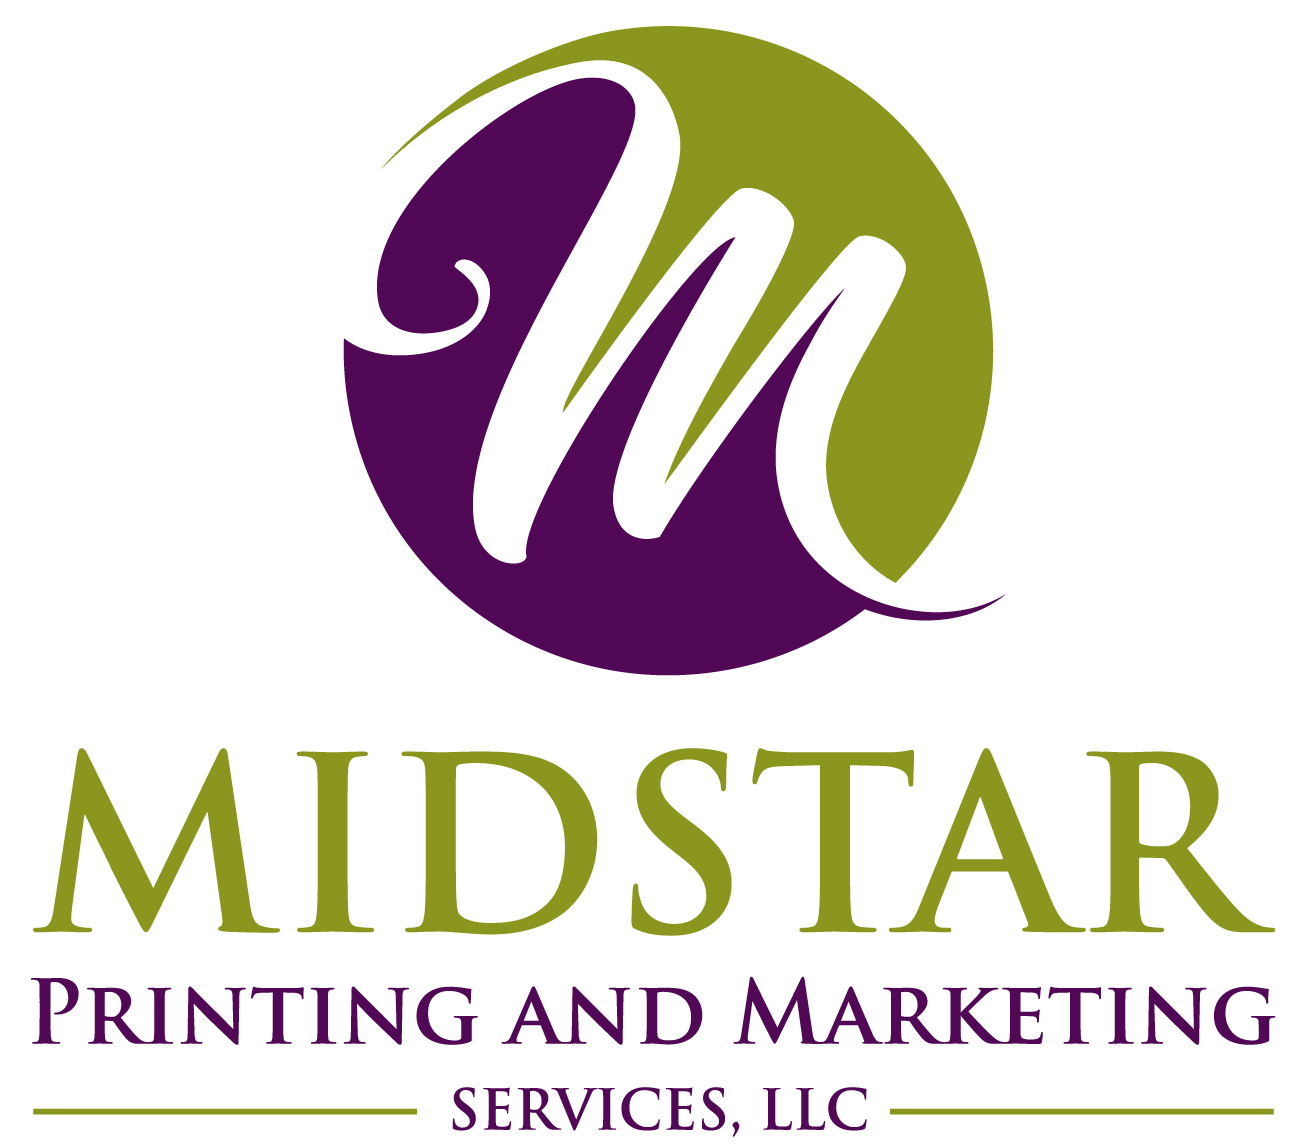 Midstar Printing and Marketing Services